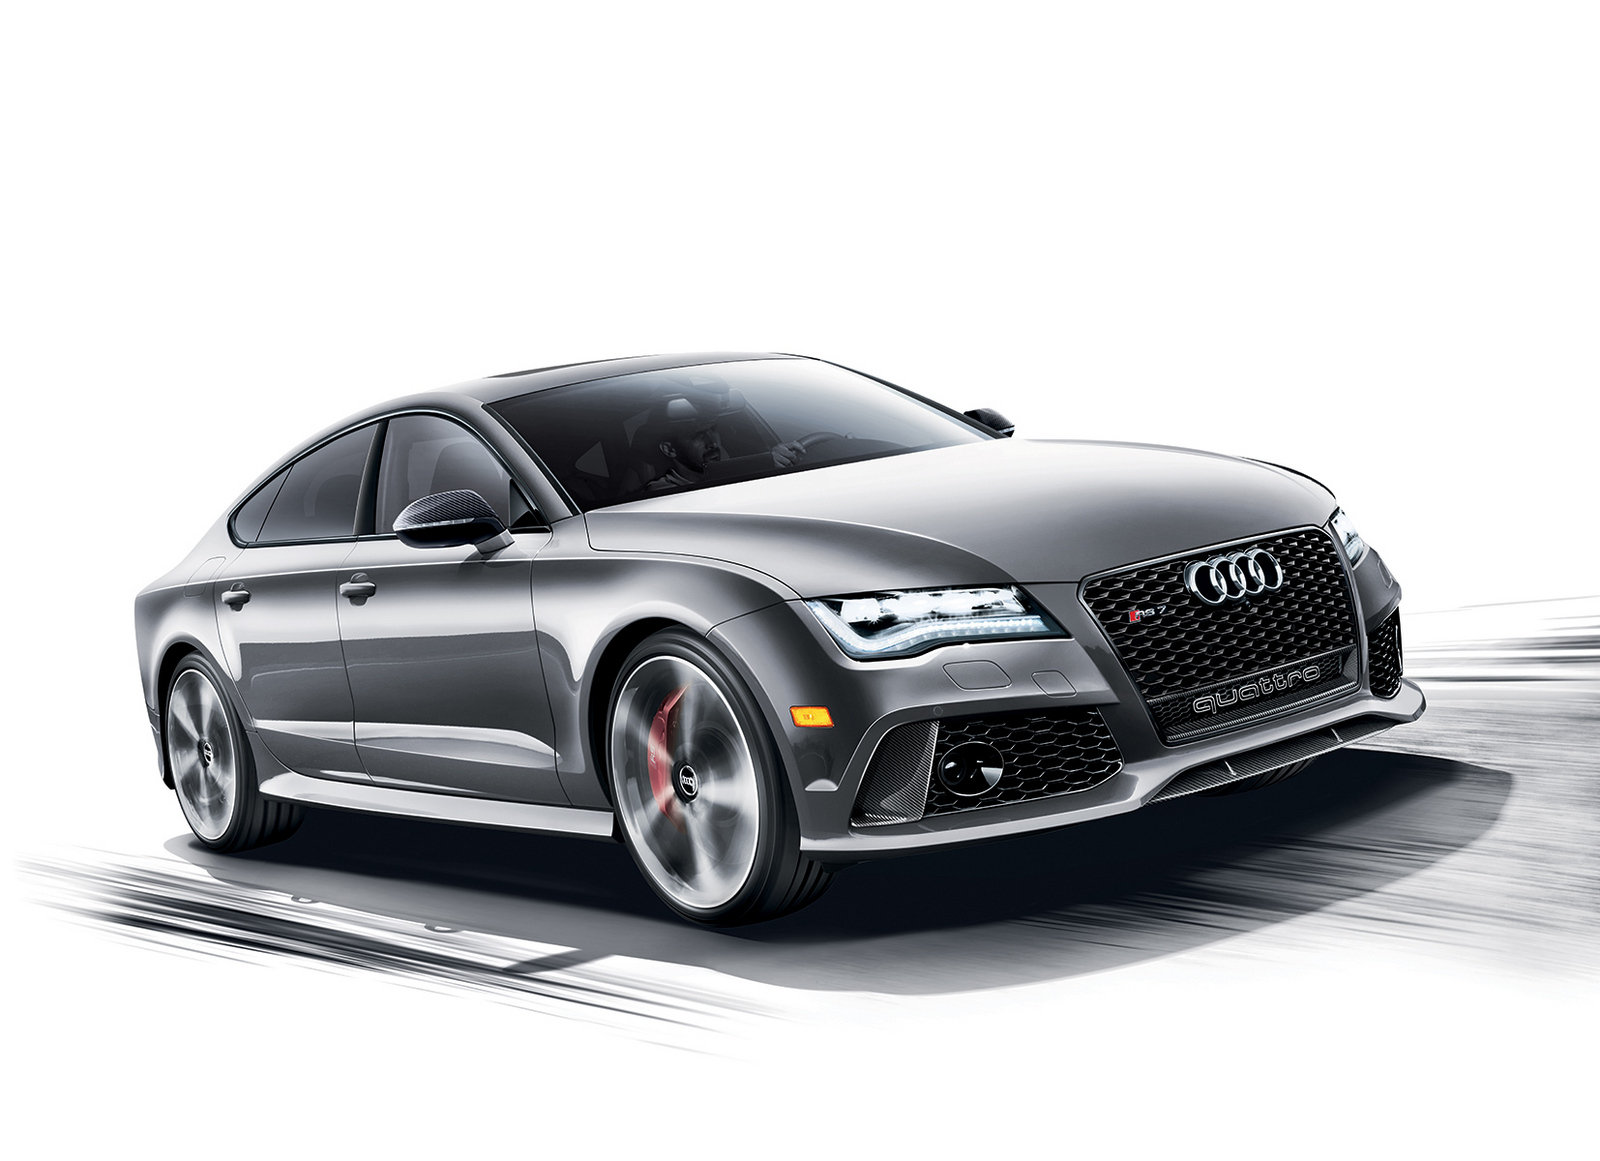 2015 audi exclusive rs7 dynamic edition review top speed. Black Bedroom Furniture Sets. Home Design Ideas